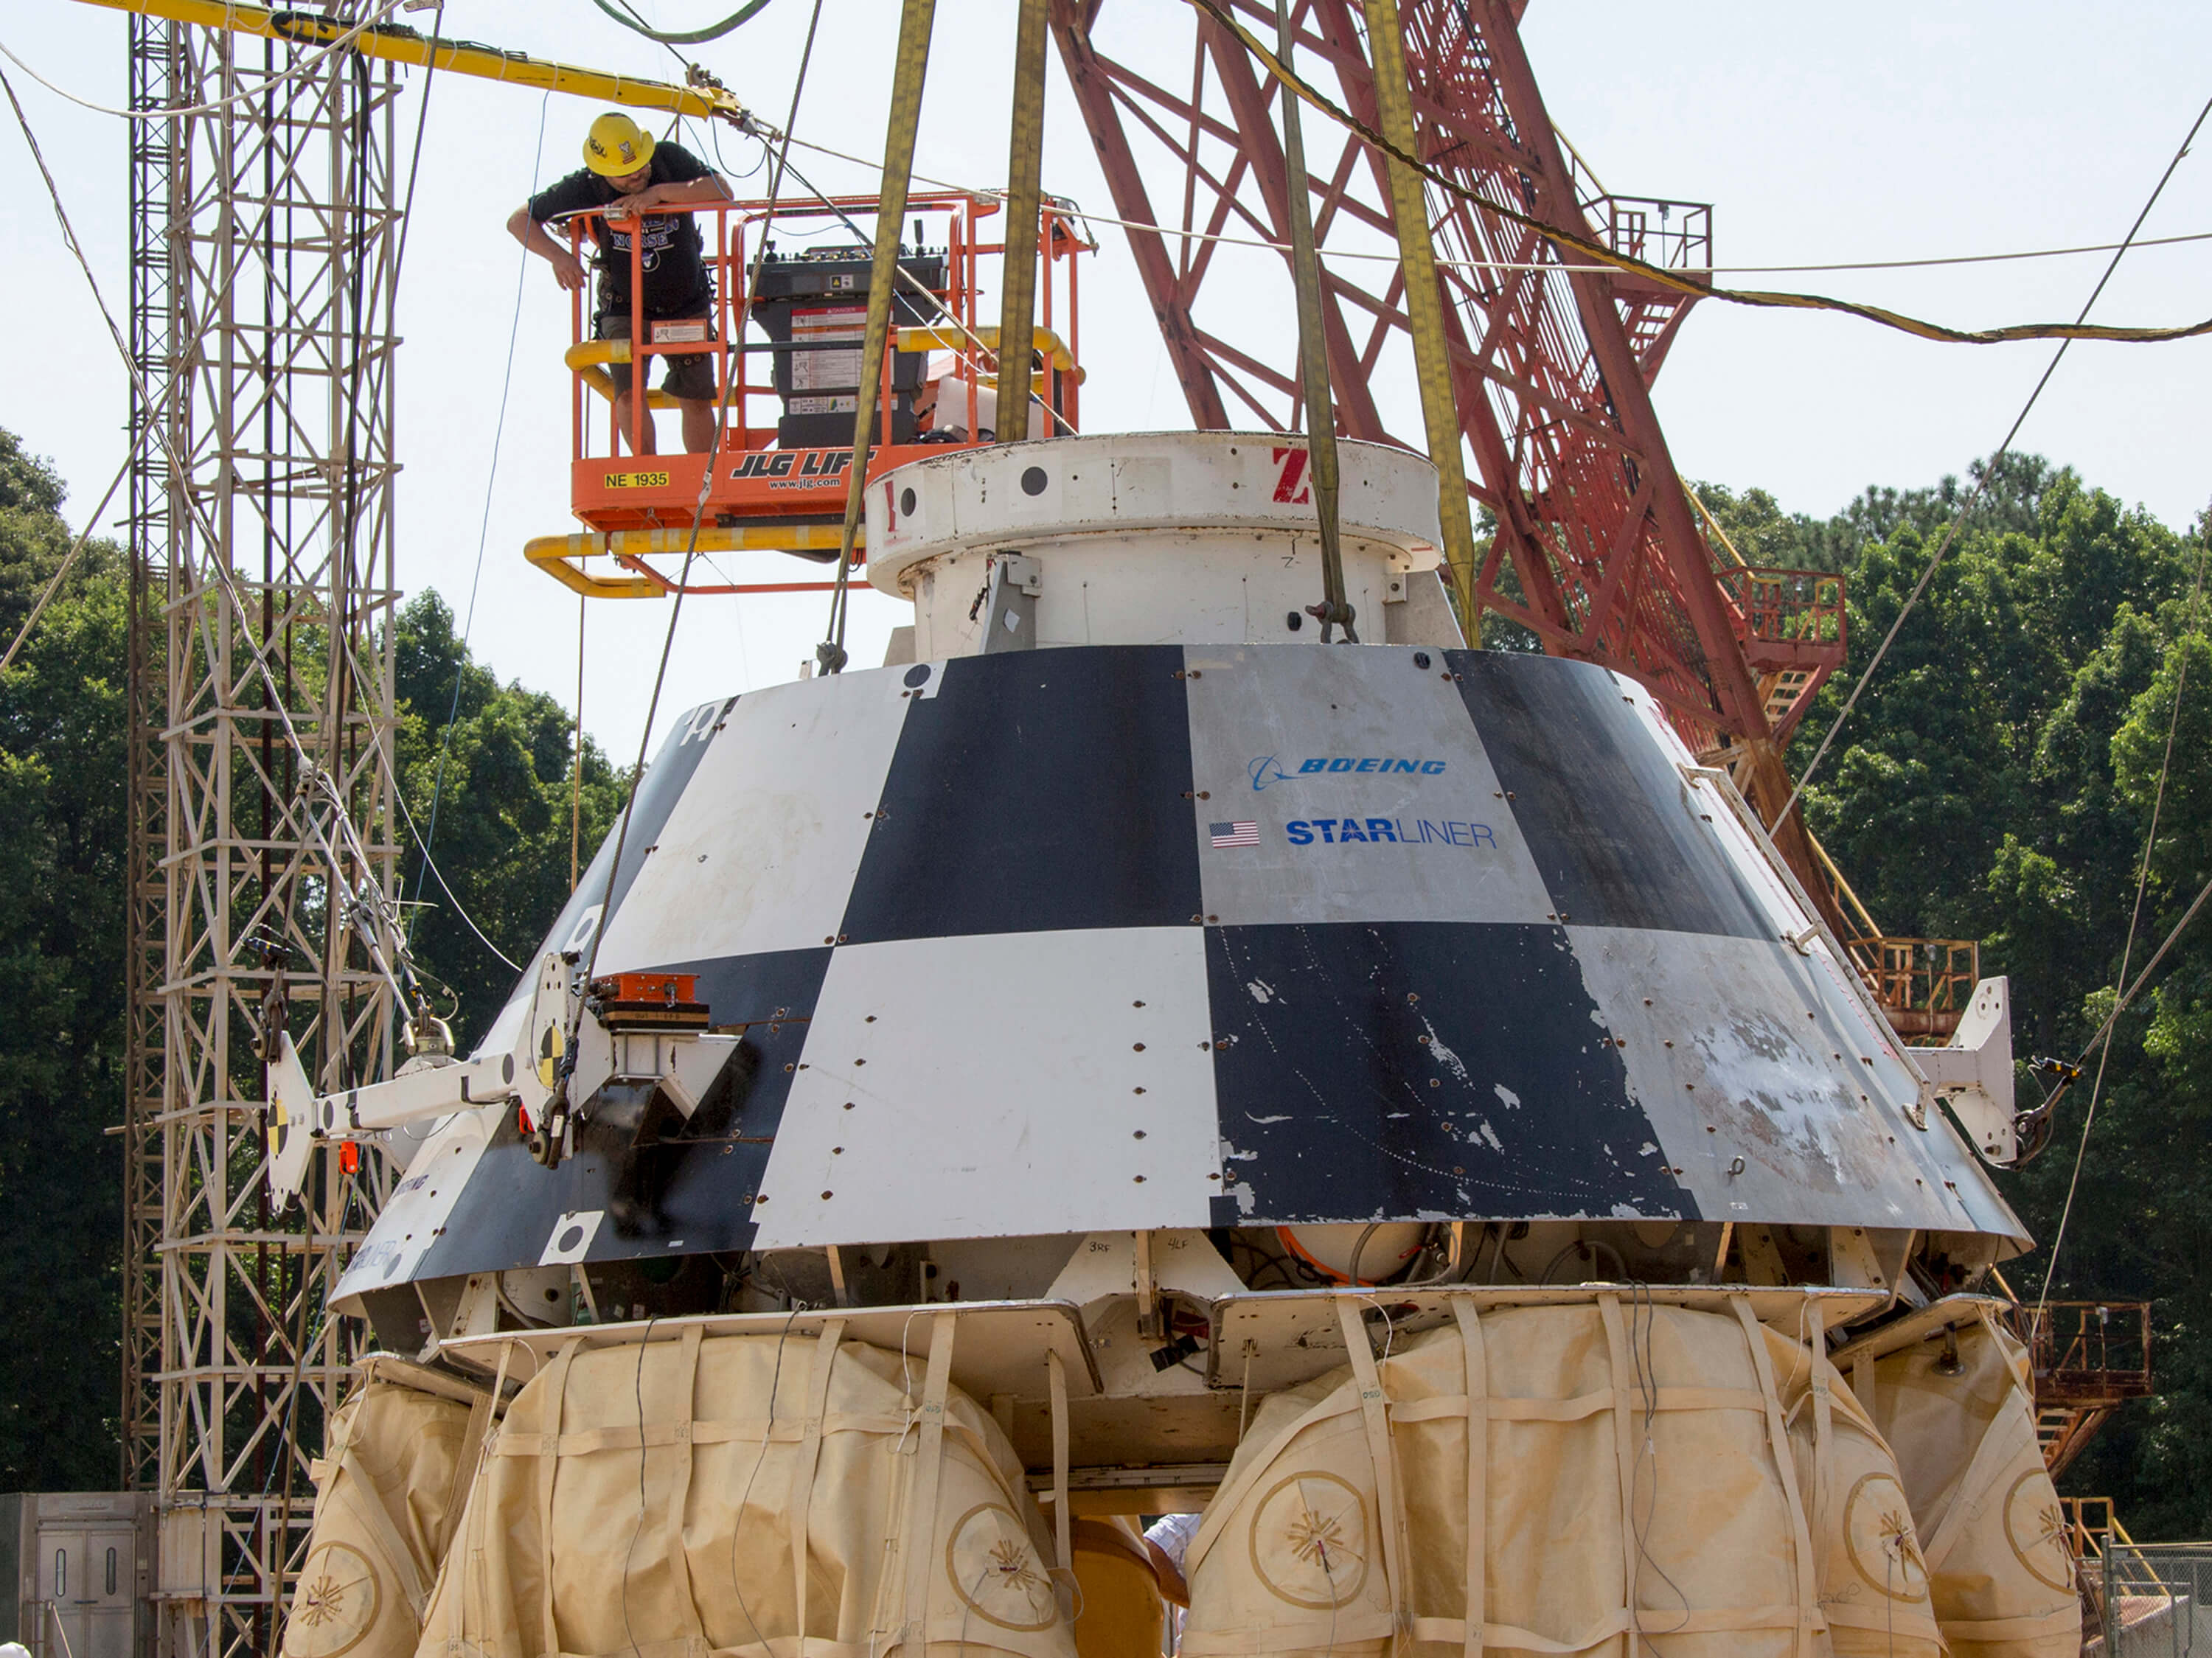 NASA Starliner Mock-Up Testing Session Went Well